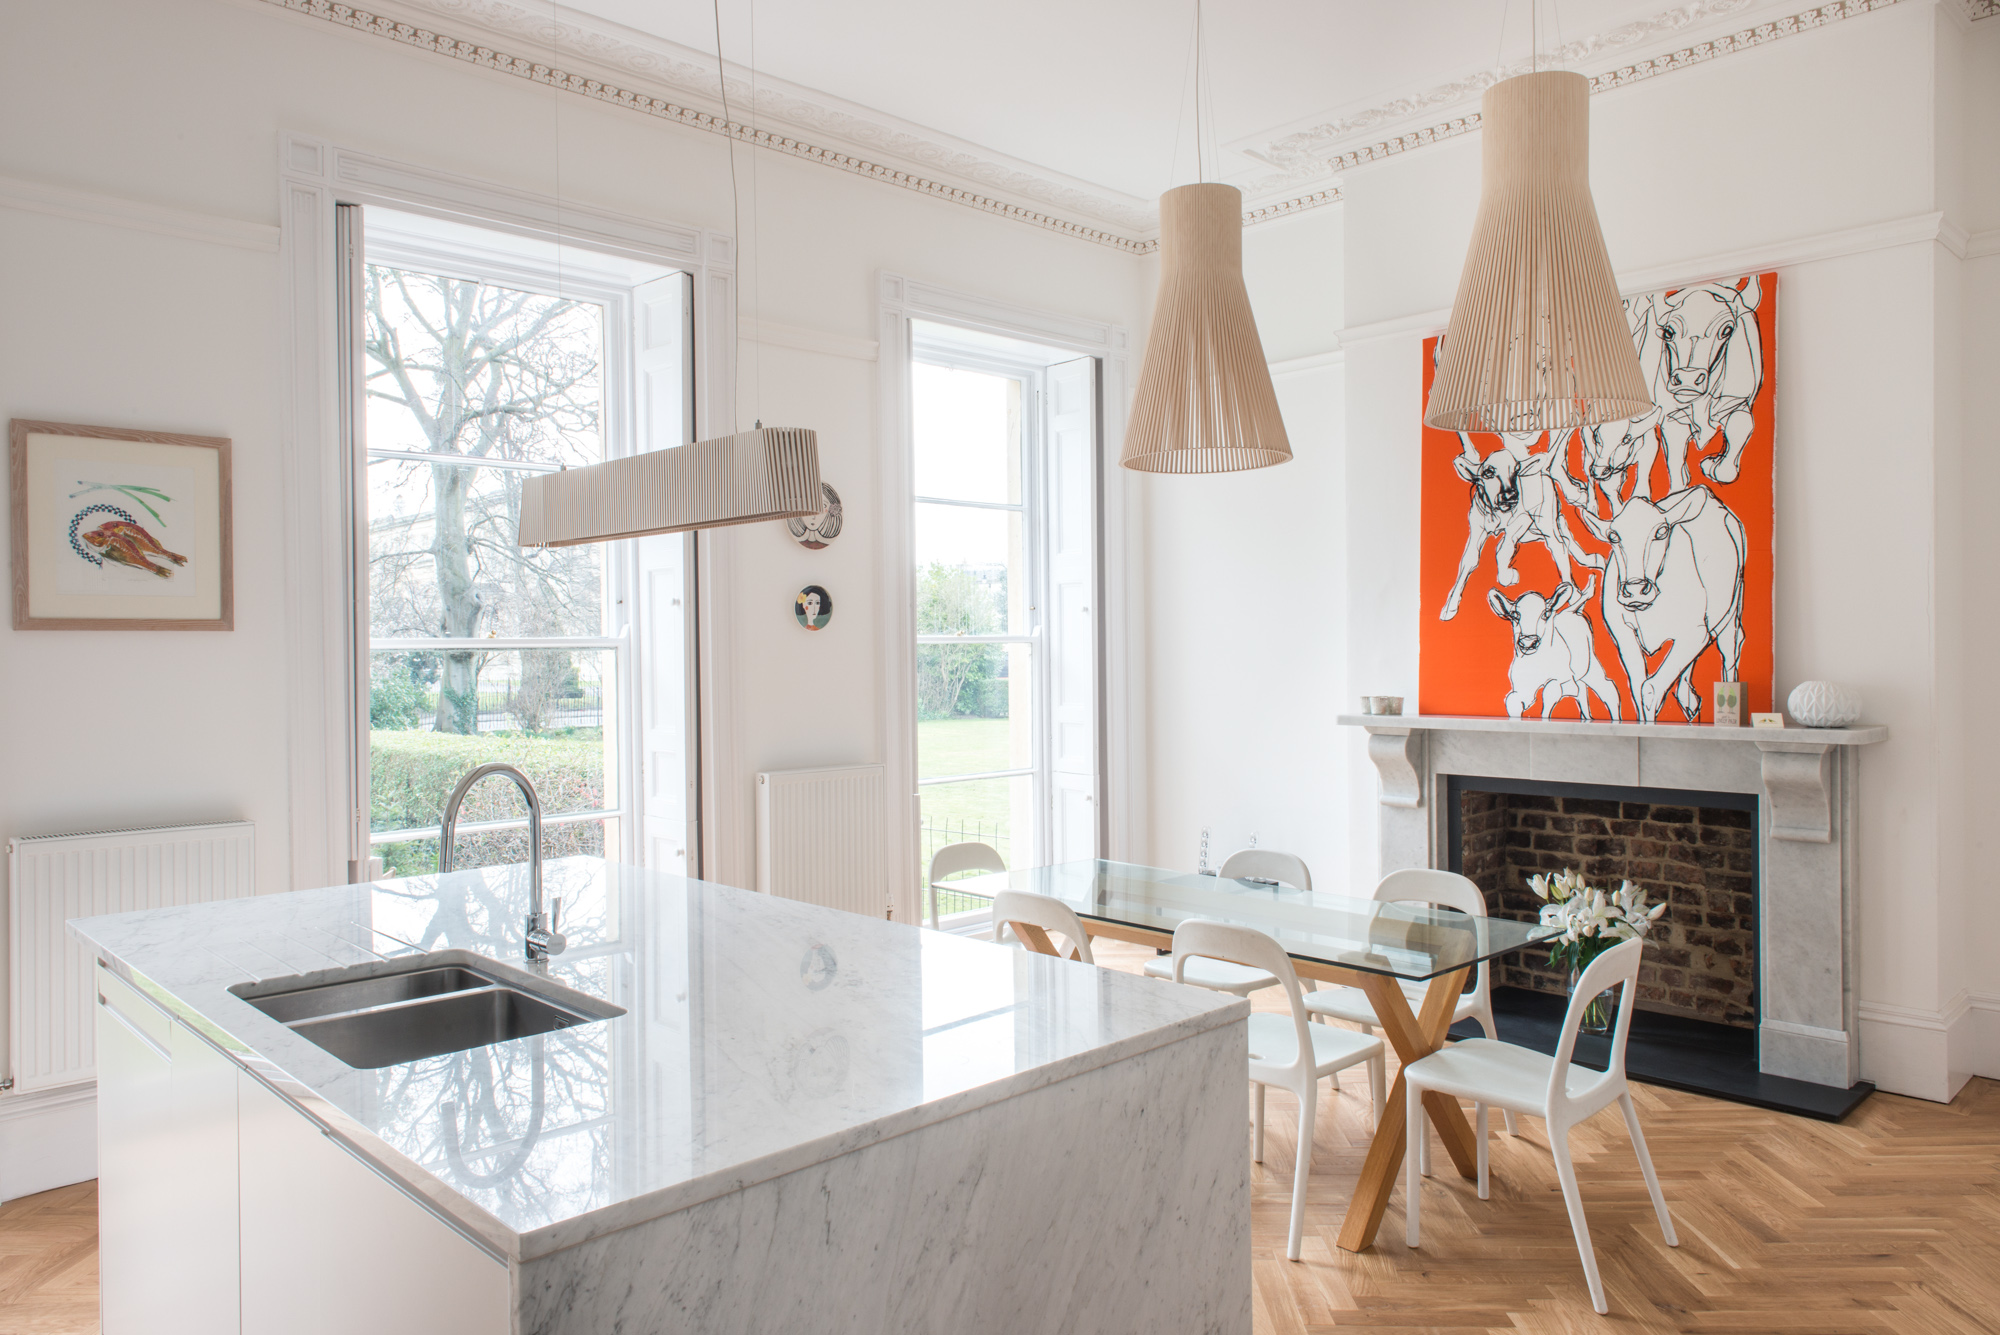 listed house refurbishment - Buchanan Partnership Architects Architectural & Interior photography by Richard stonehouse architectural photographer.